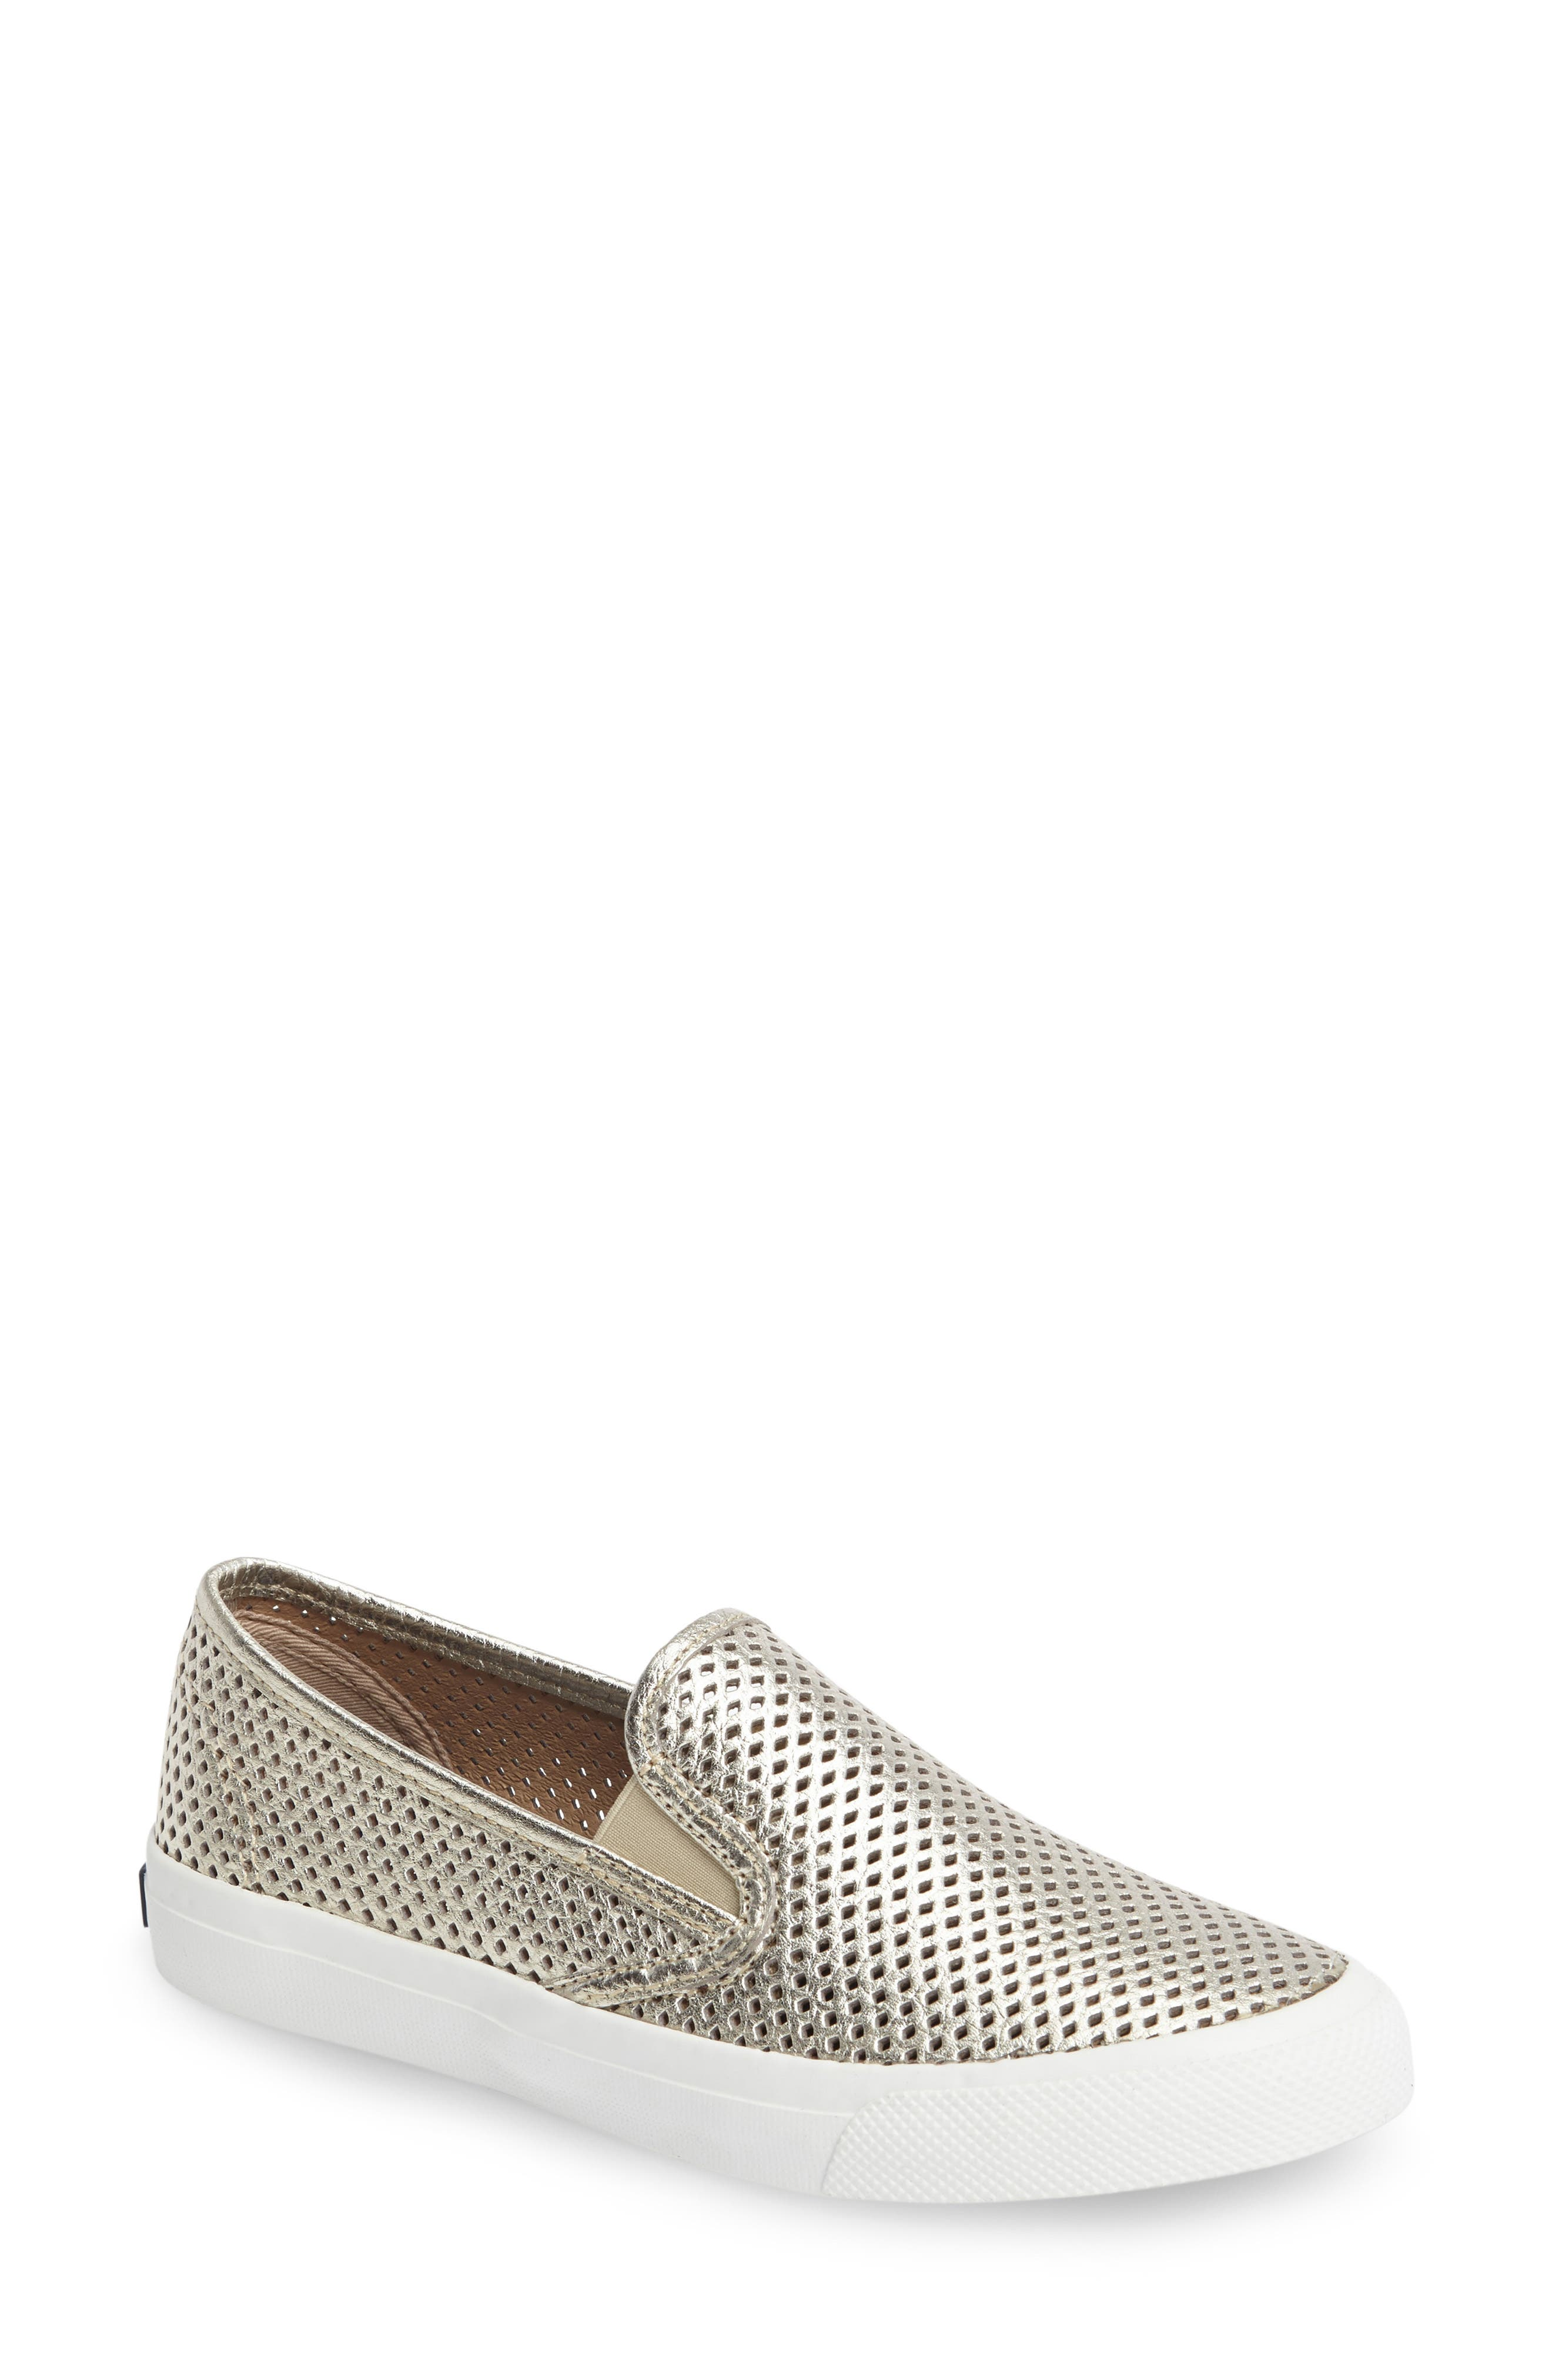 'Seaside' Perforated Slip-On Sneaker,                             Main thumbnail 11, color,